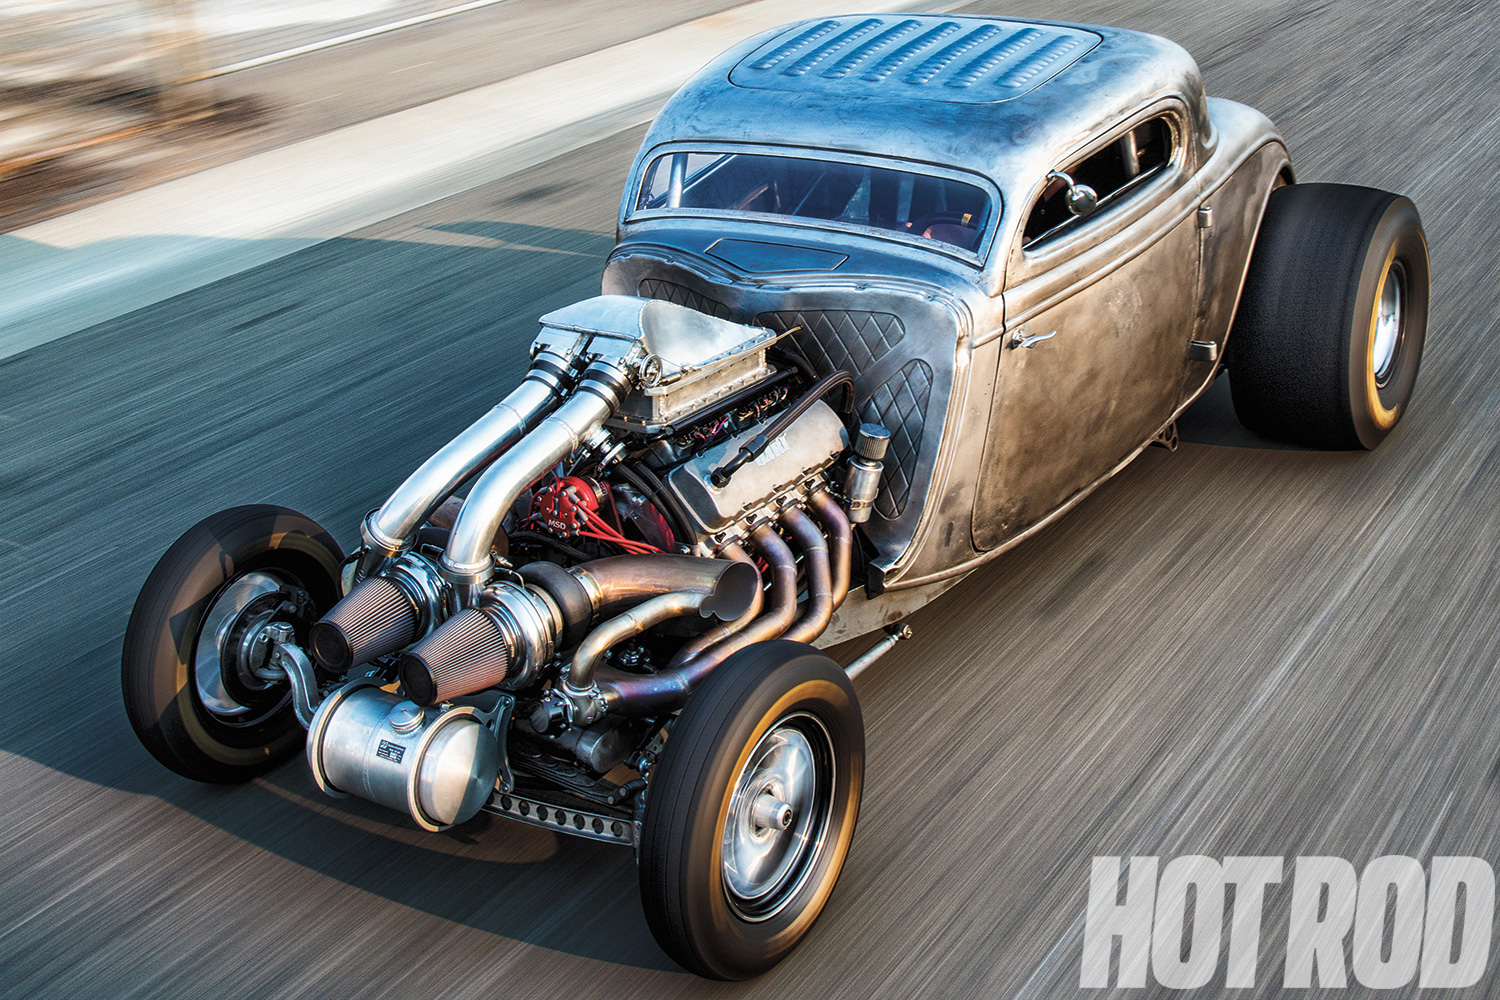 This '34 Ford dirt-track dog has miraculously found new life with owner Rick Feicheer and builder Ed Umland from Eddie's Chop Shop in Sacramento, California. The hopeless heap has been rejuvenated for the street, strip, and perhaps even Bonneville one day.